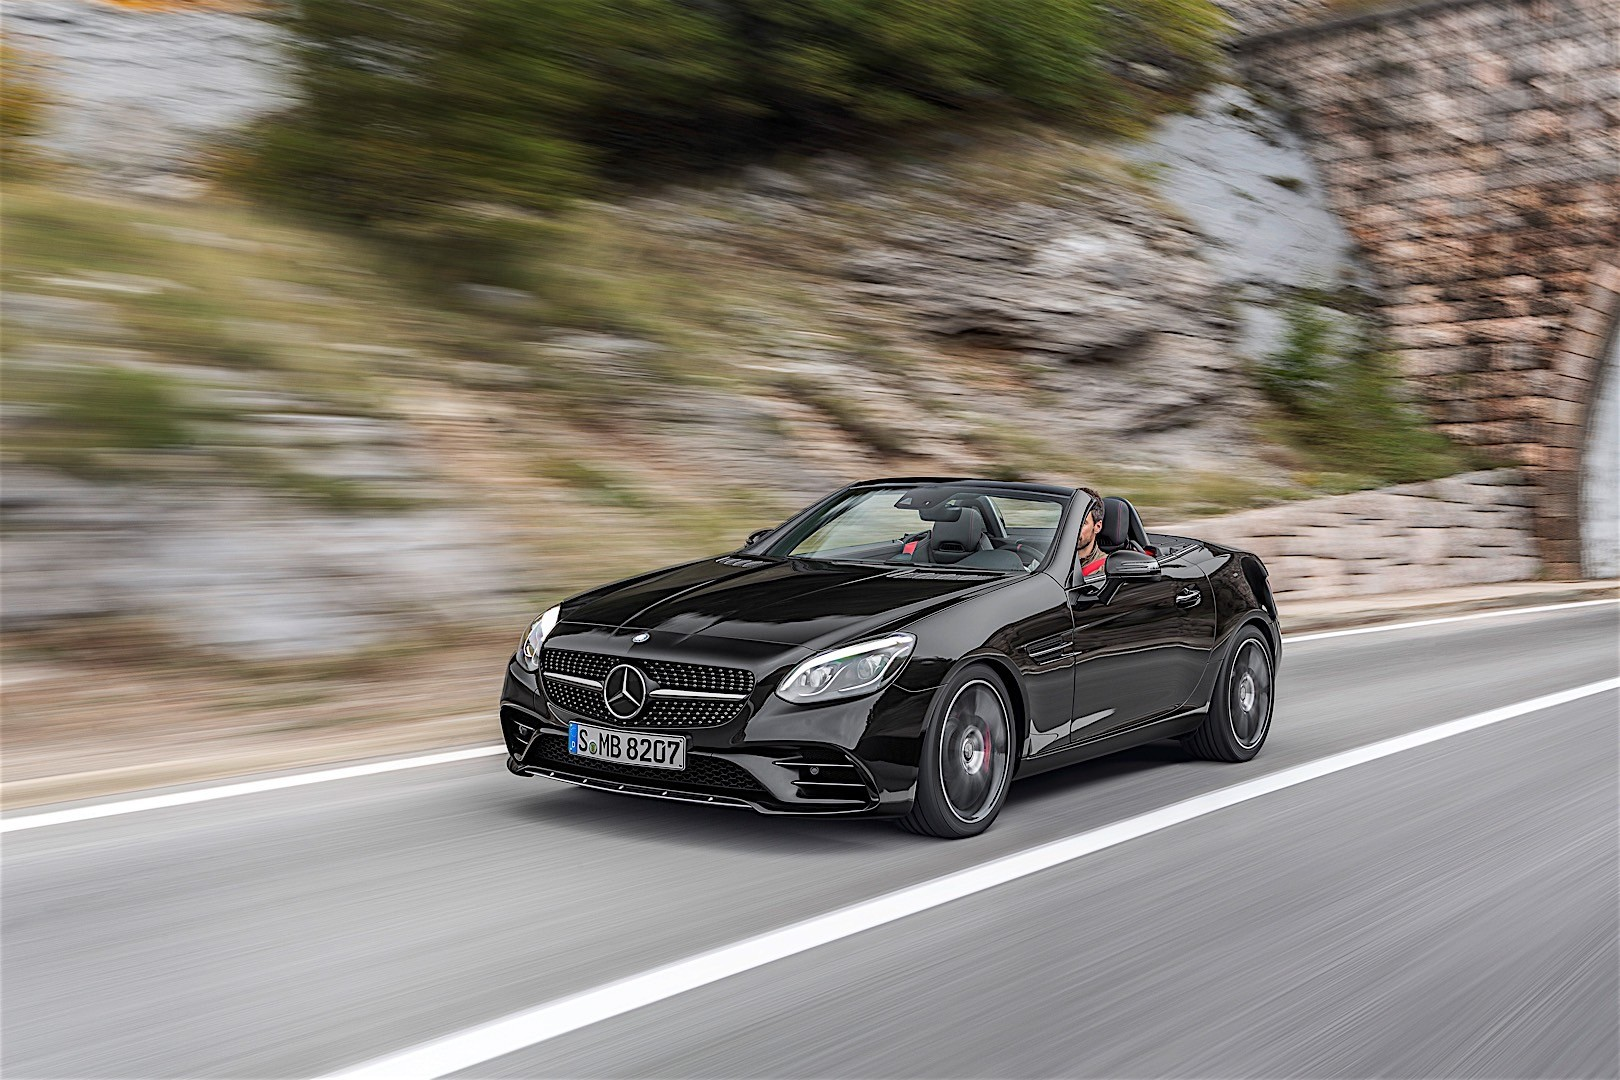 2017 mercedes amg slc 43 sights and sounds autoevolution for Mercedes benz net worth 2017